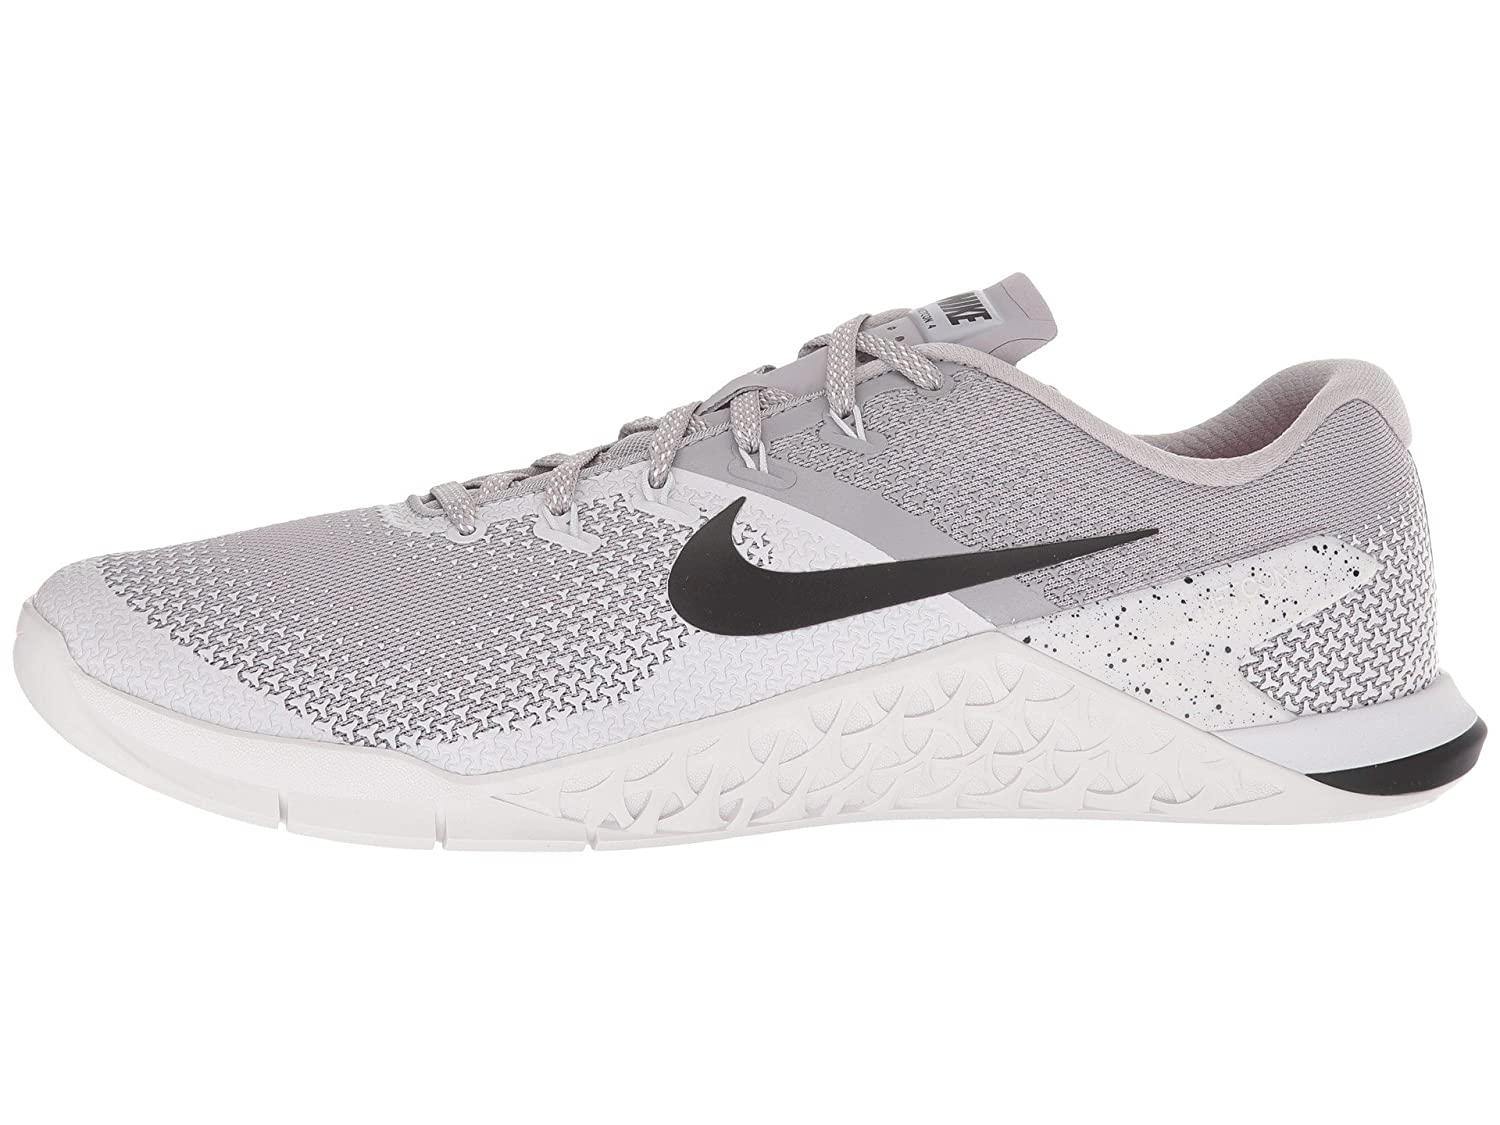 NIKE Men's Metcon 4 Training Shoes B0761XTCDR 9 D(M) USAtmosphere